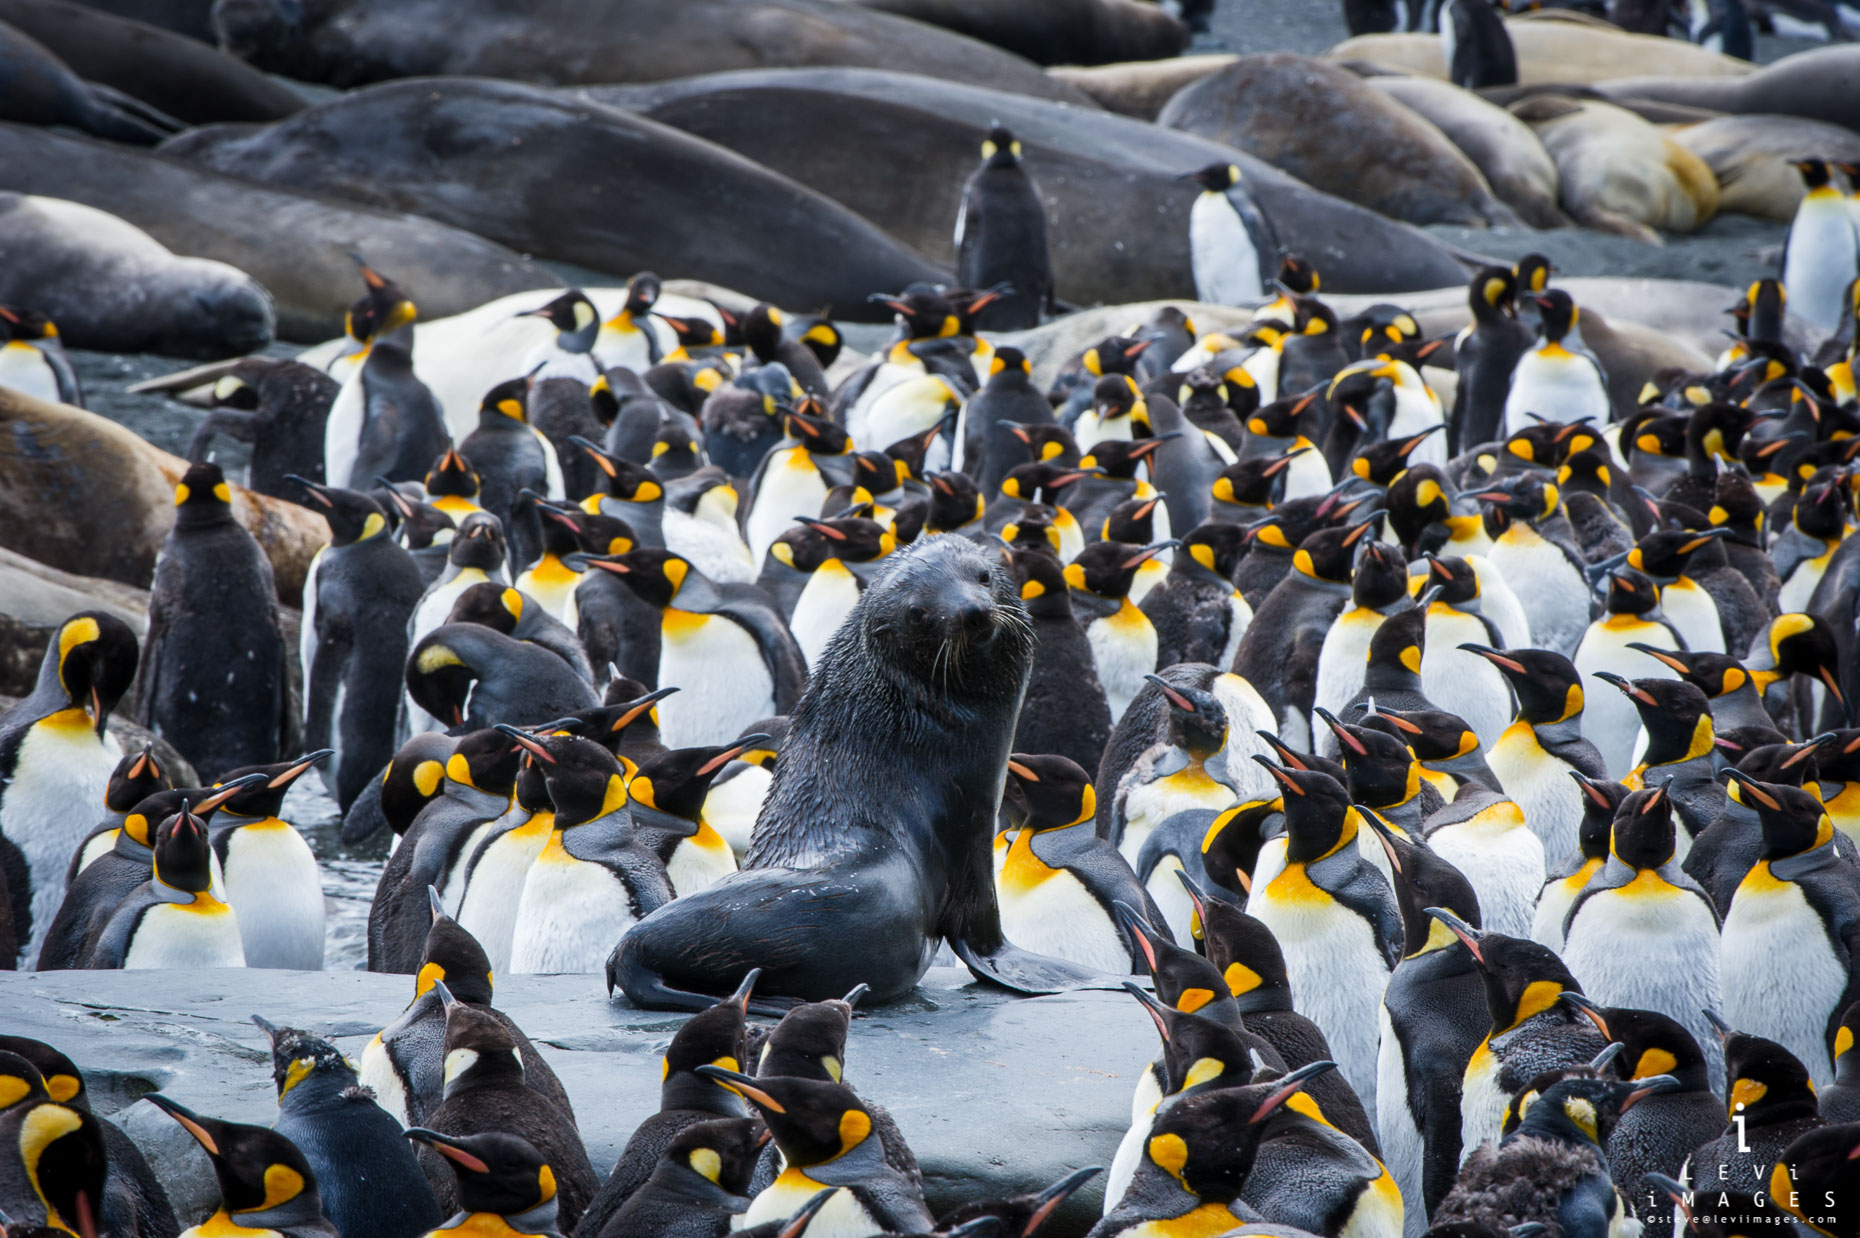 Antarctic fur seal (Arctocephalus gazella) sits on rock surrounded by penguins and elephant seals, South Georgia Island